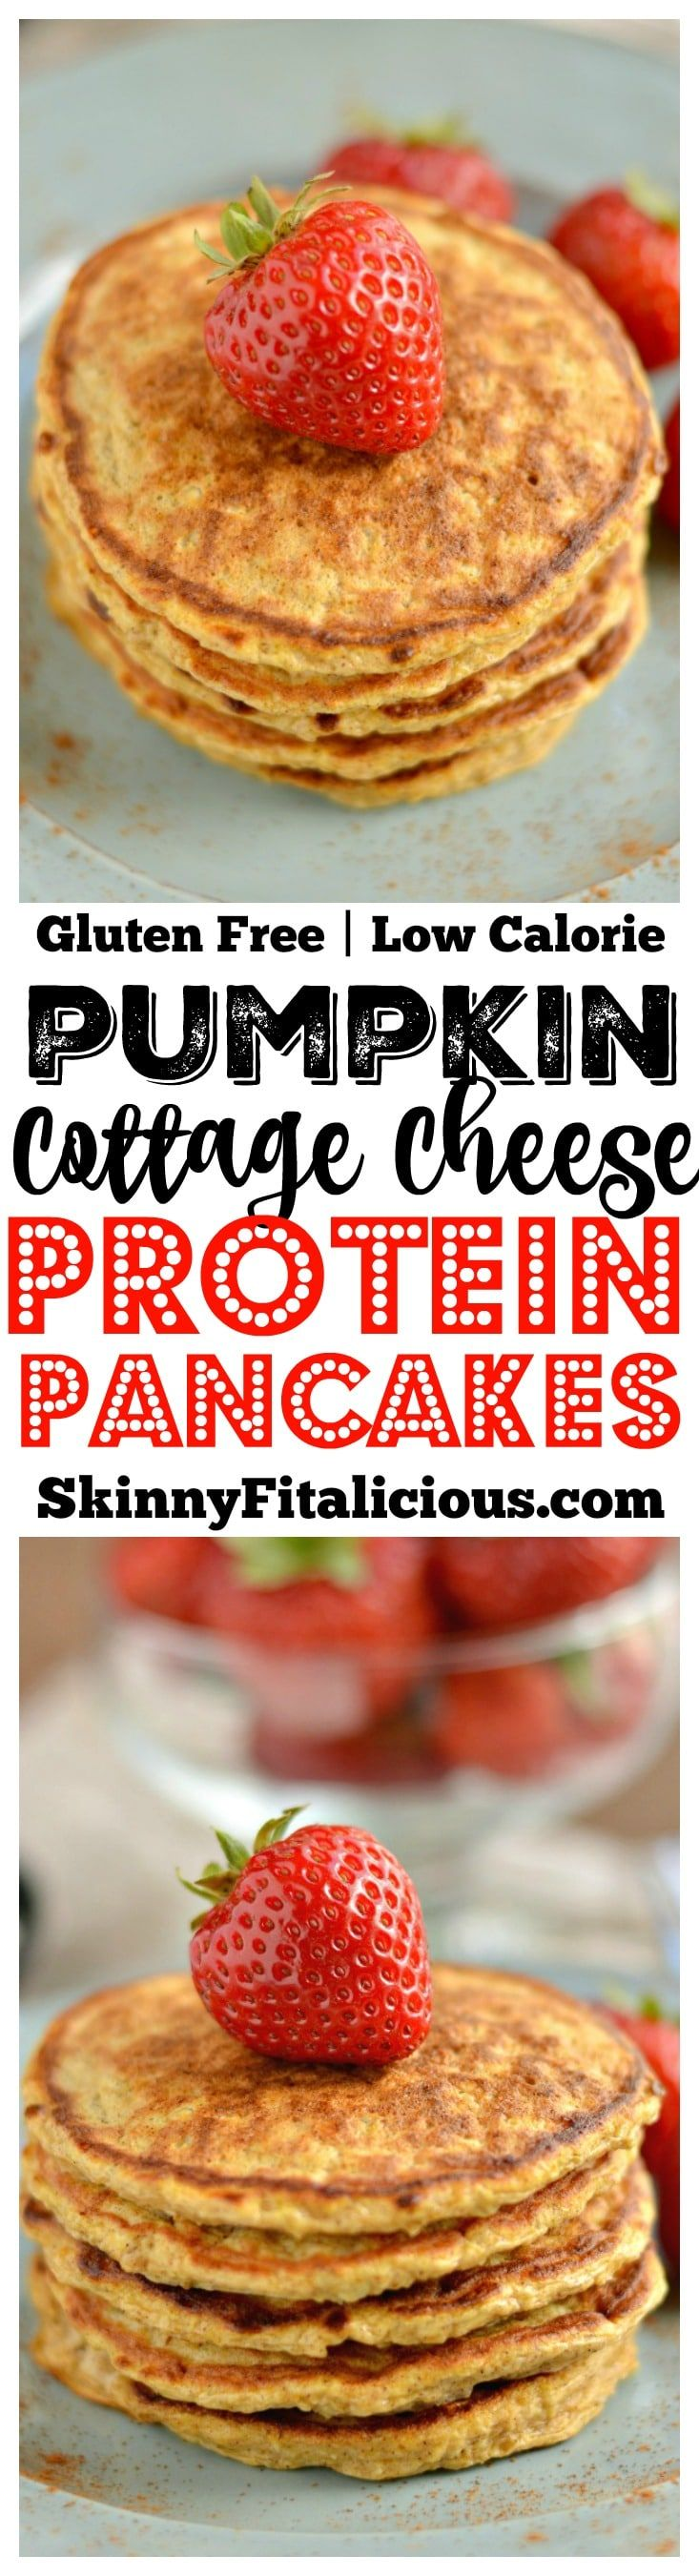 Fluffy Pumpkin Protein Pancakes made with cottage cheese and fall inspired flavors, make a high protein breakfast. A healthy way to start your day! Low Calorie + Gluten Free